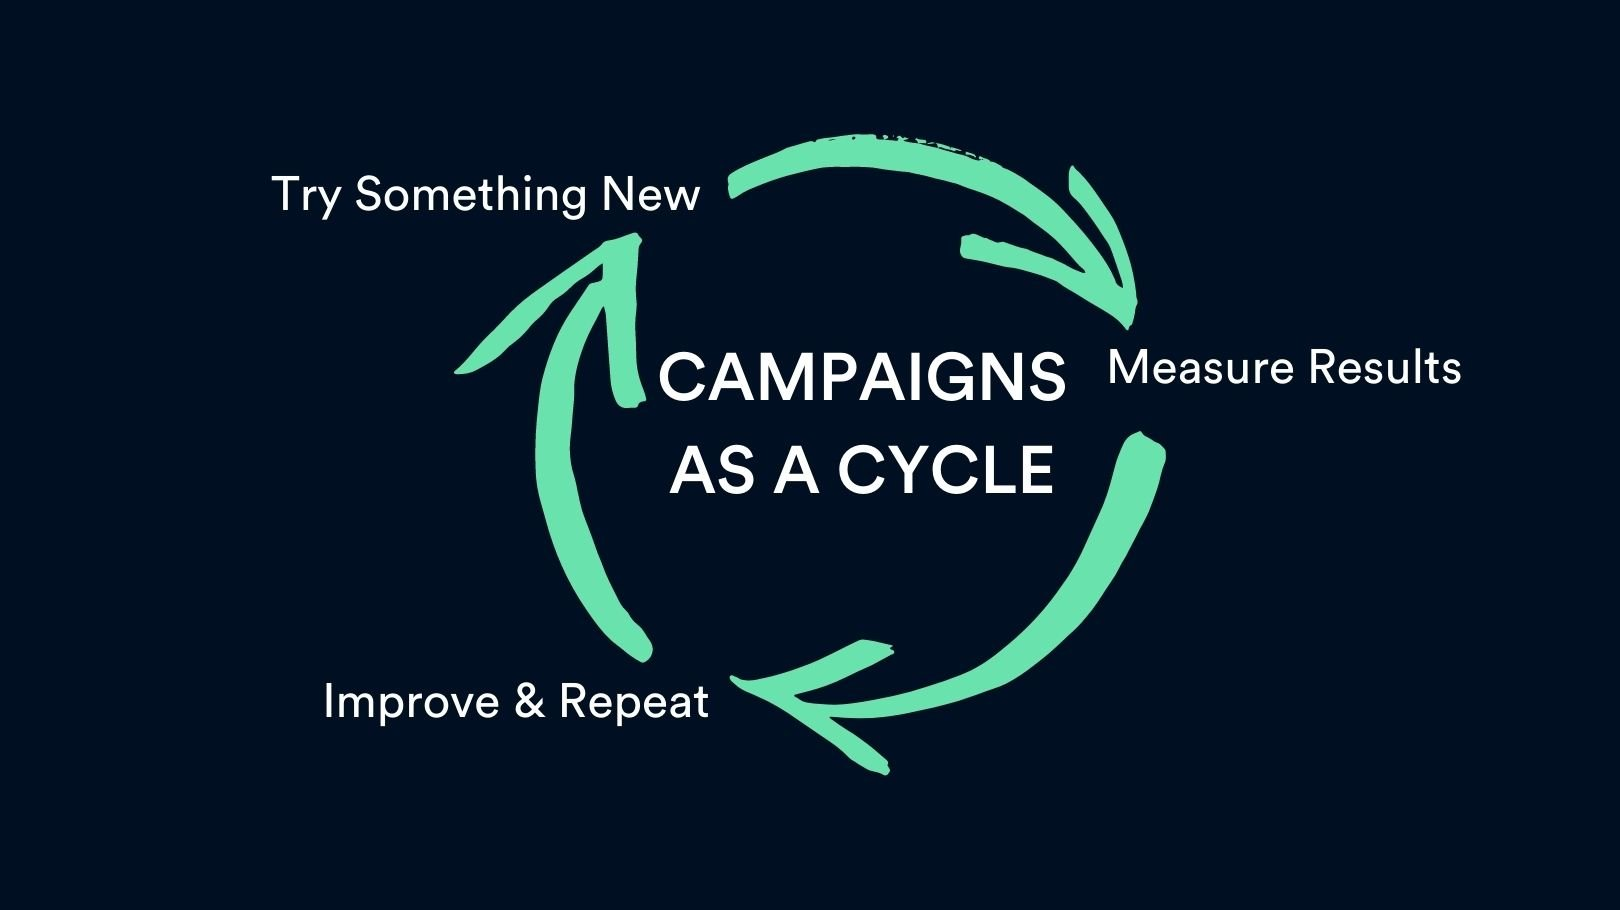 Campaign Improvement Cycle